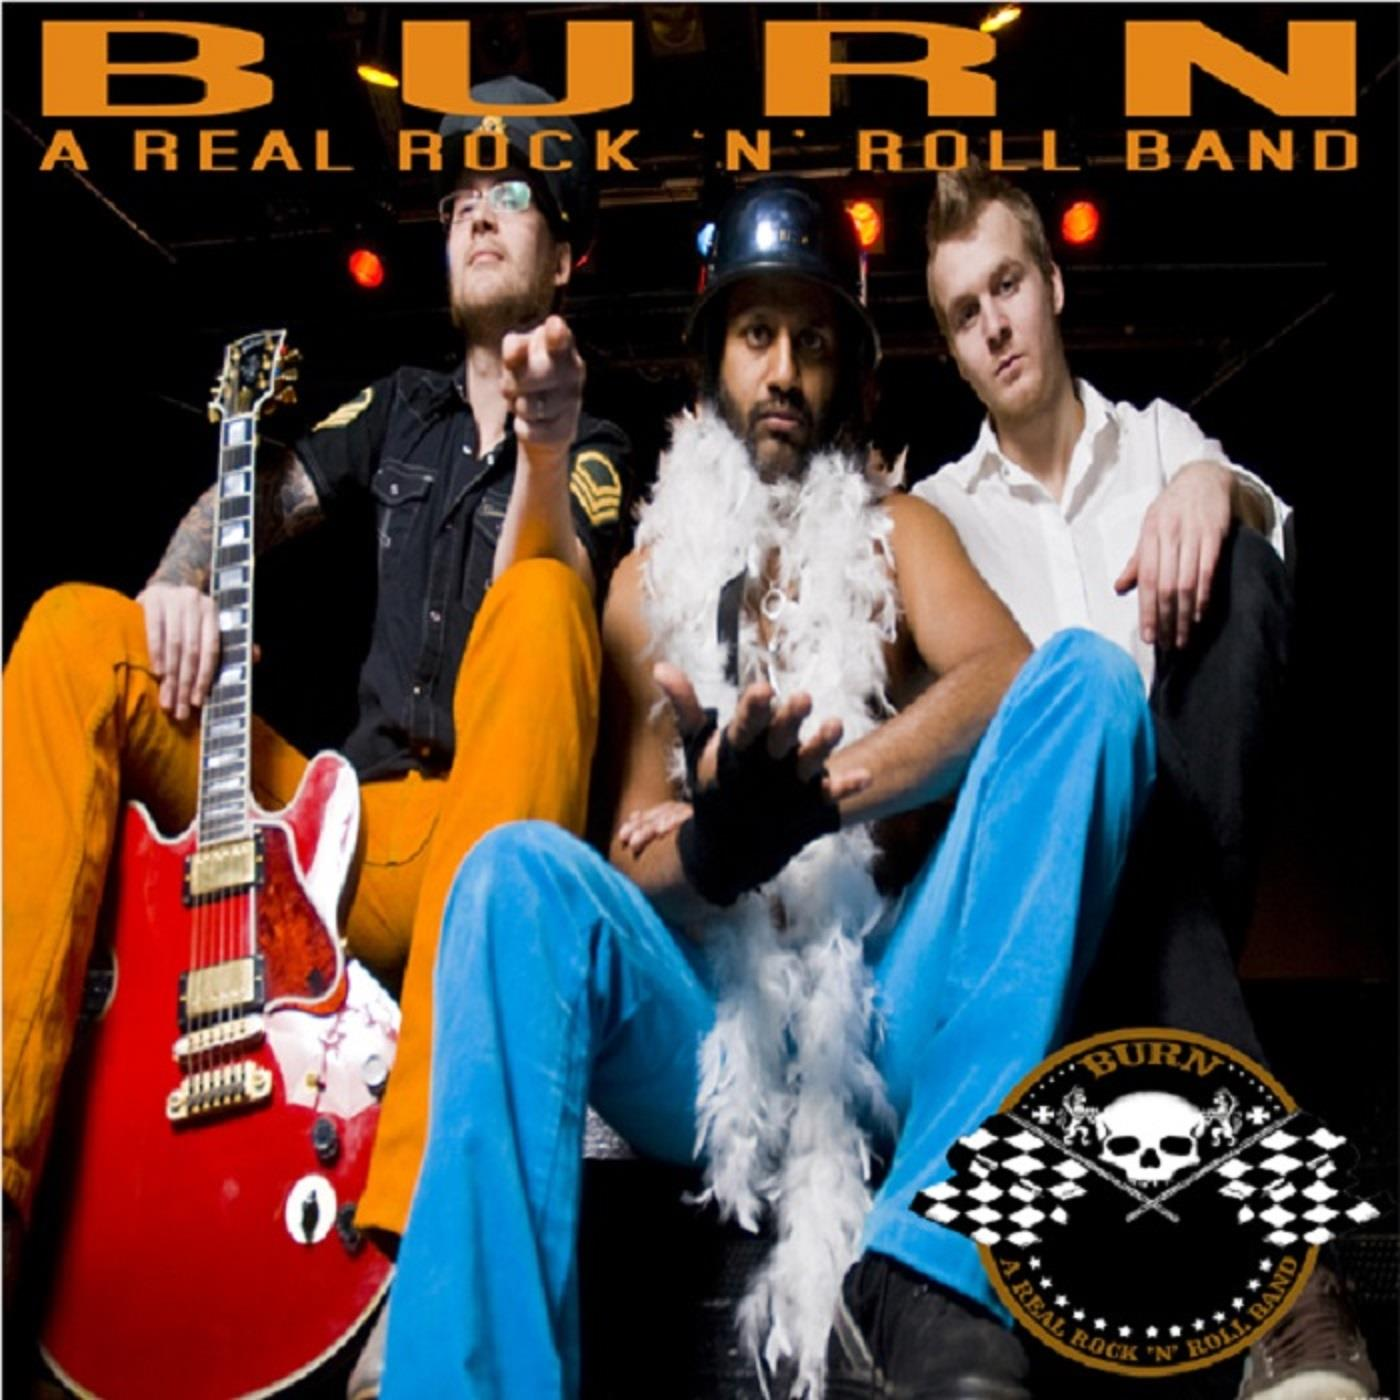 A real rock´n´roll band